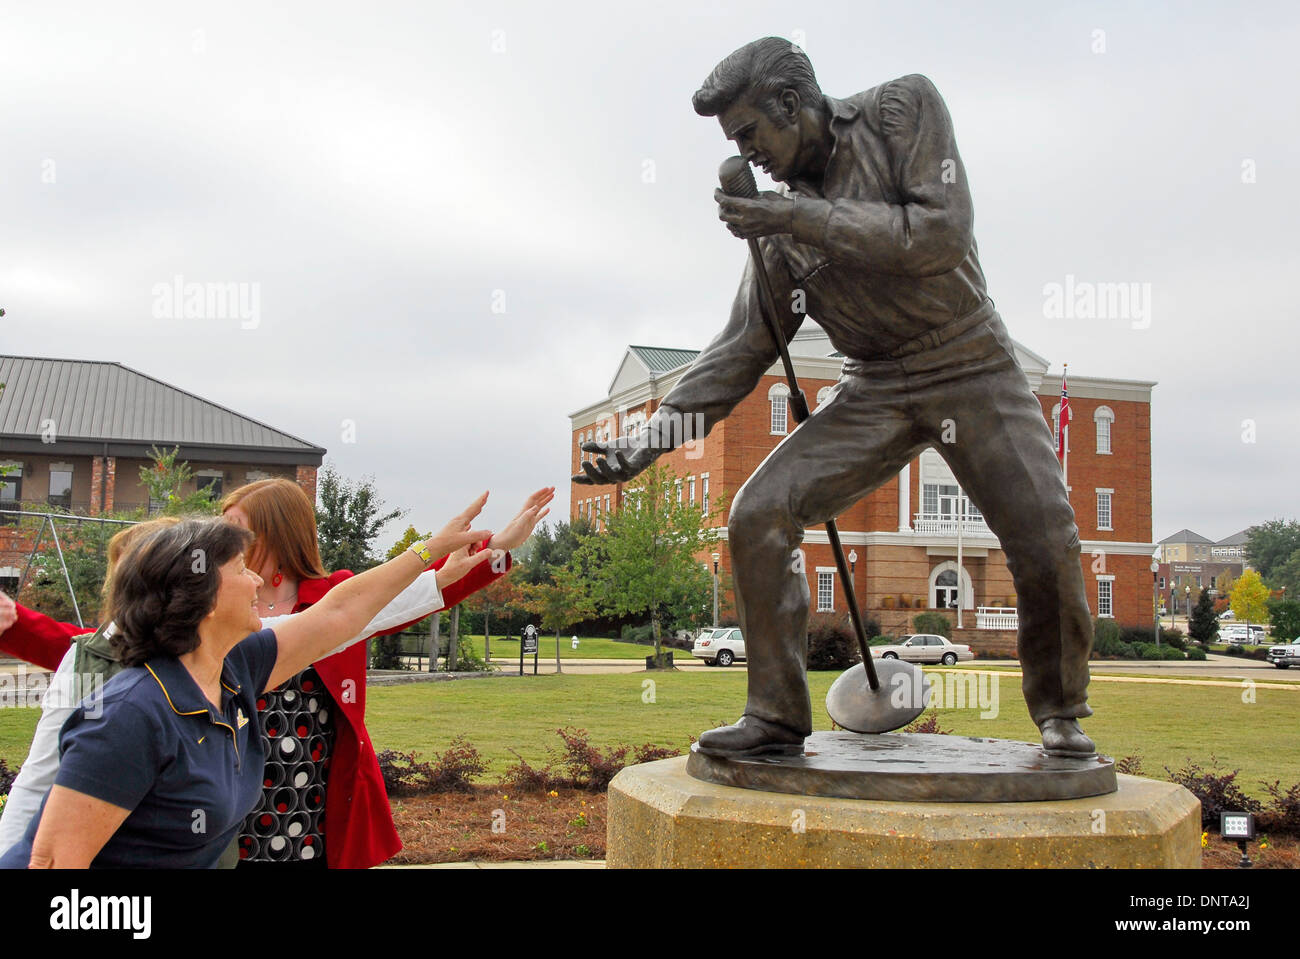 Statue of Elvis Presley at his Homecoming Concert in 1956 in Tupelo, Mississippi, home of Elvis Presley for his first 13 years - Stock Image